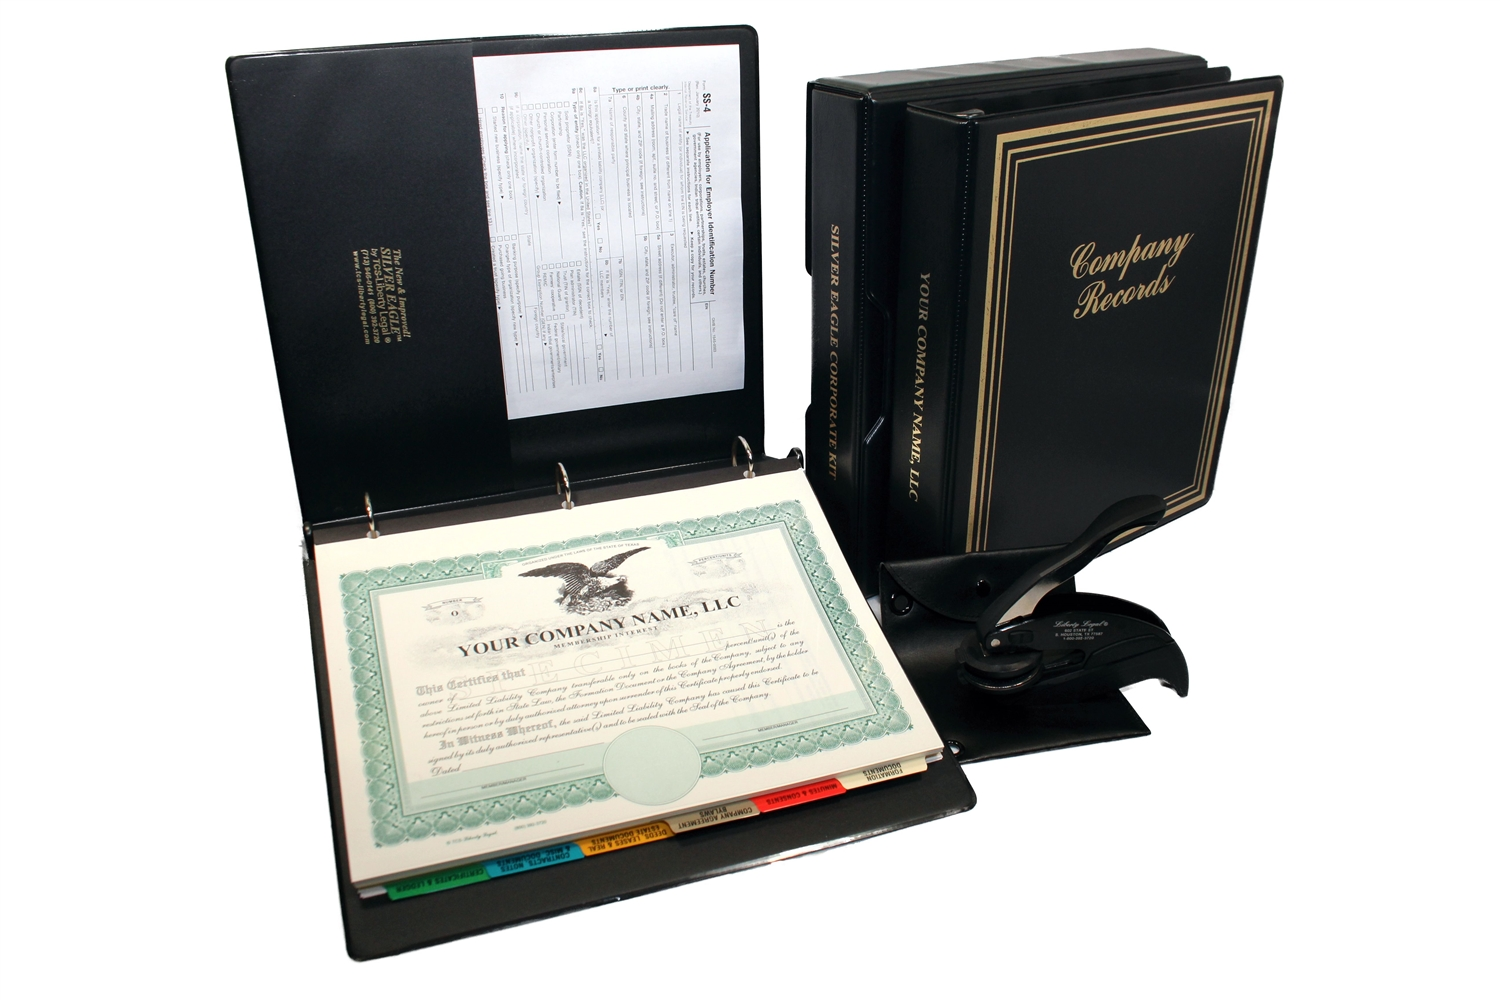 00dce2318cf4a The Silver Eagle Corporate Kit - Favored by Professionals for 30 Years!